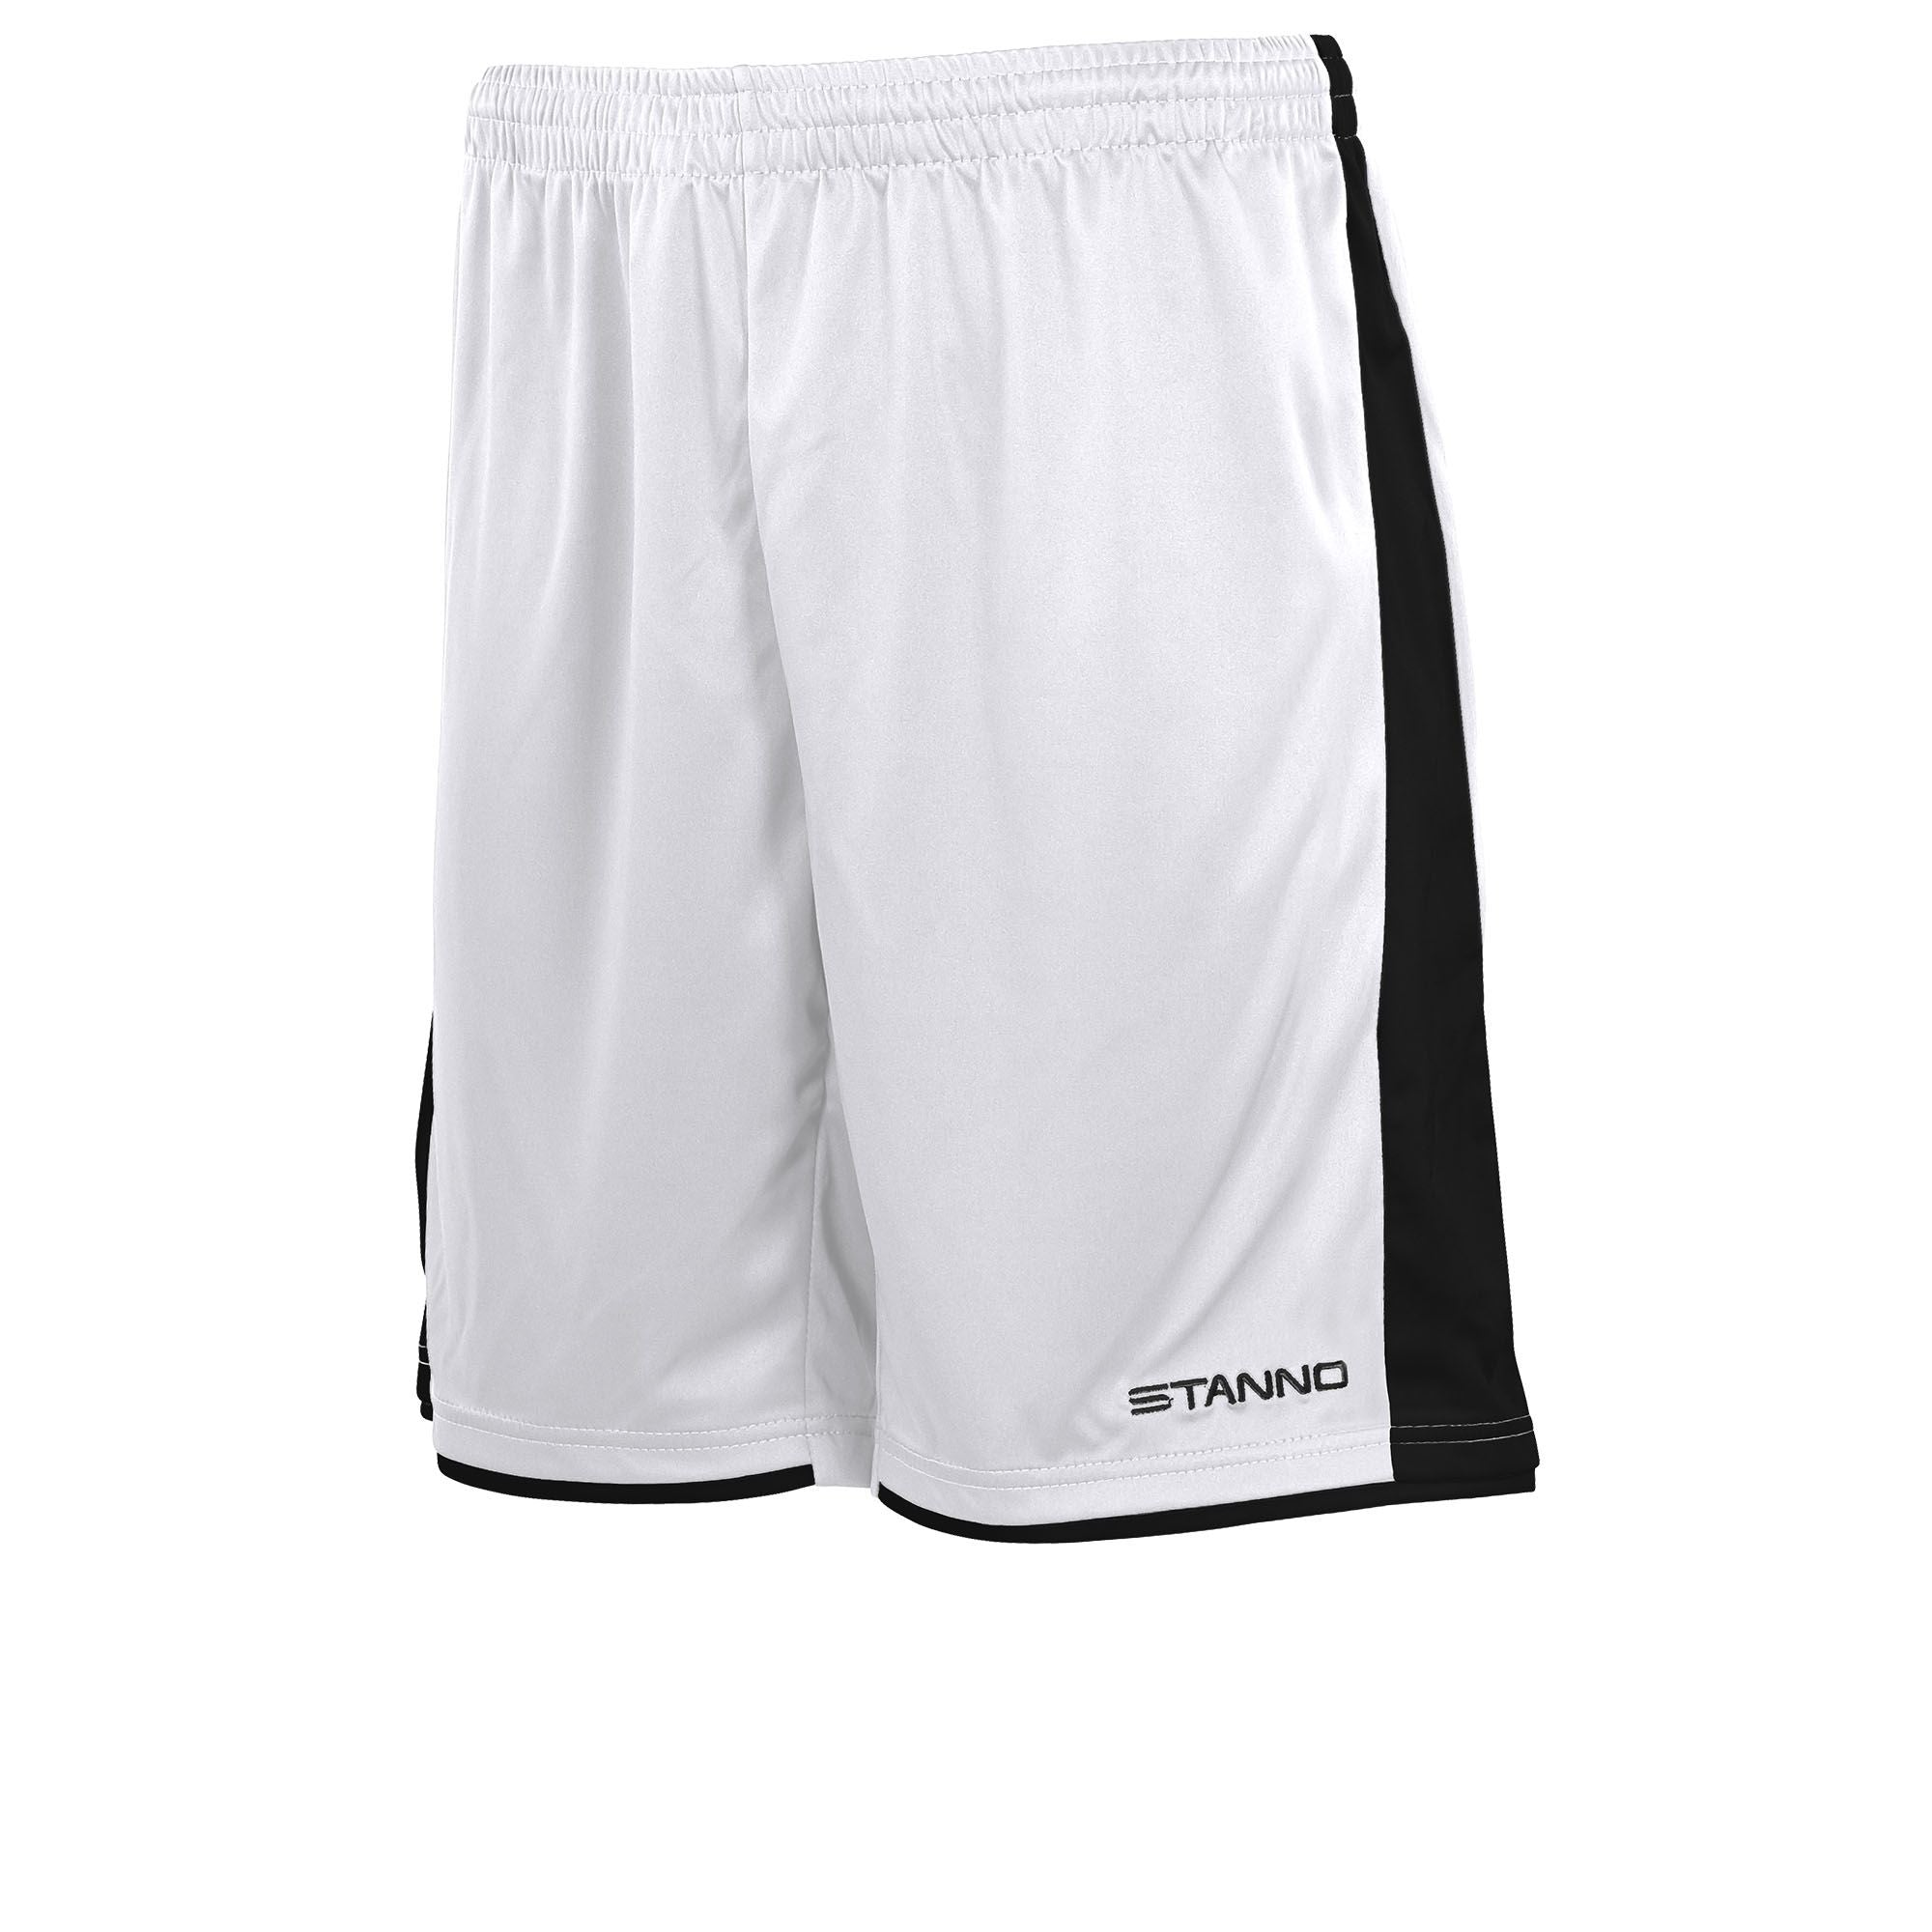 Stanno Milan Shorts - White/Black